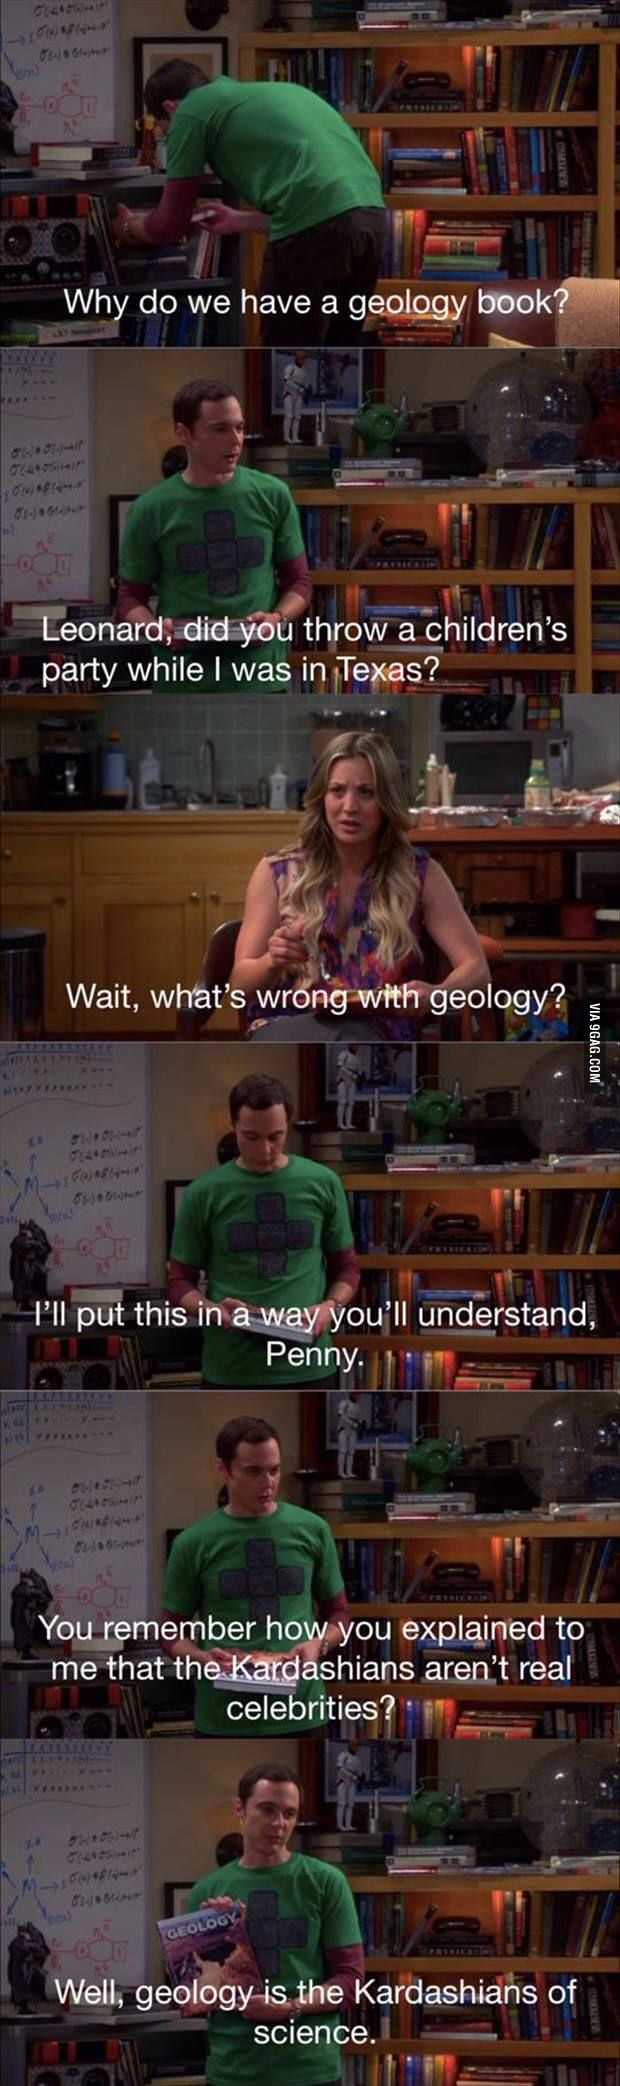 I'm offended for the geology community! But not going to lie this was a funny scene!